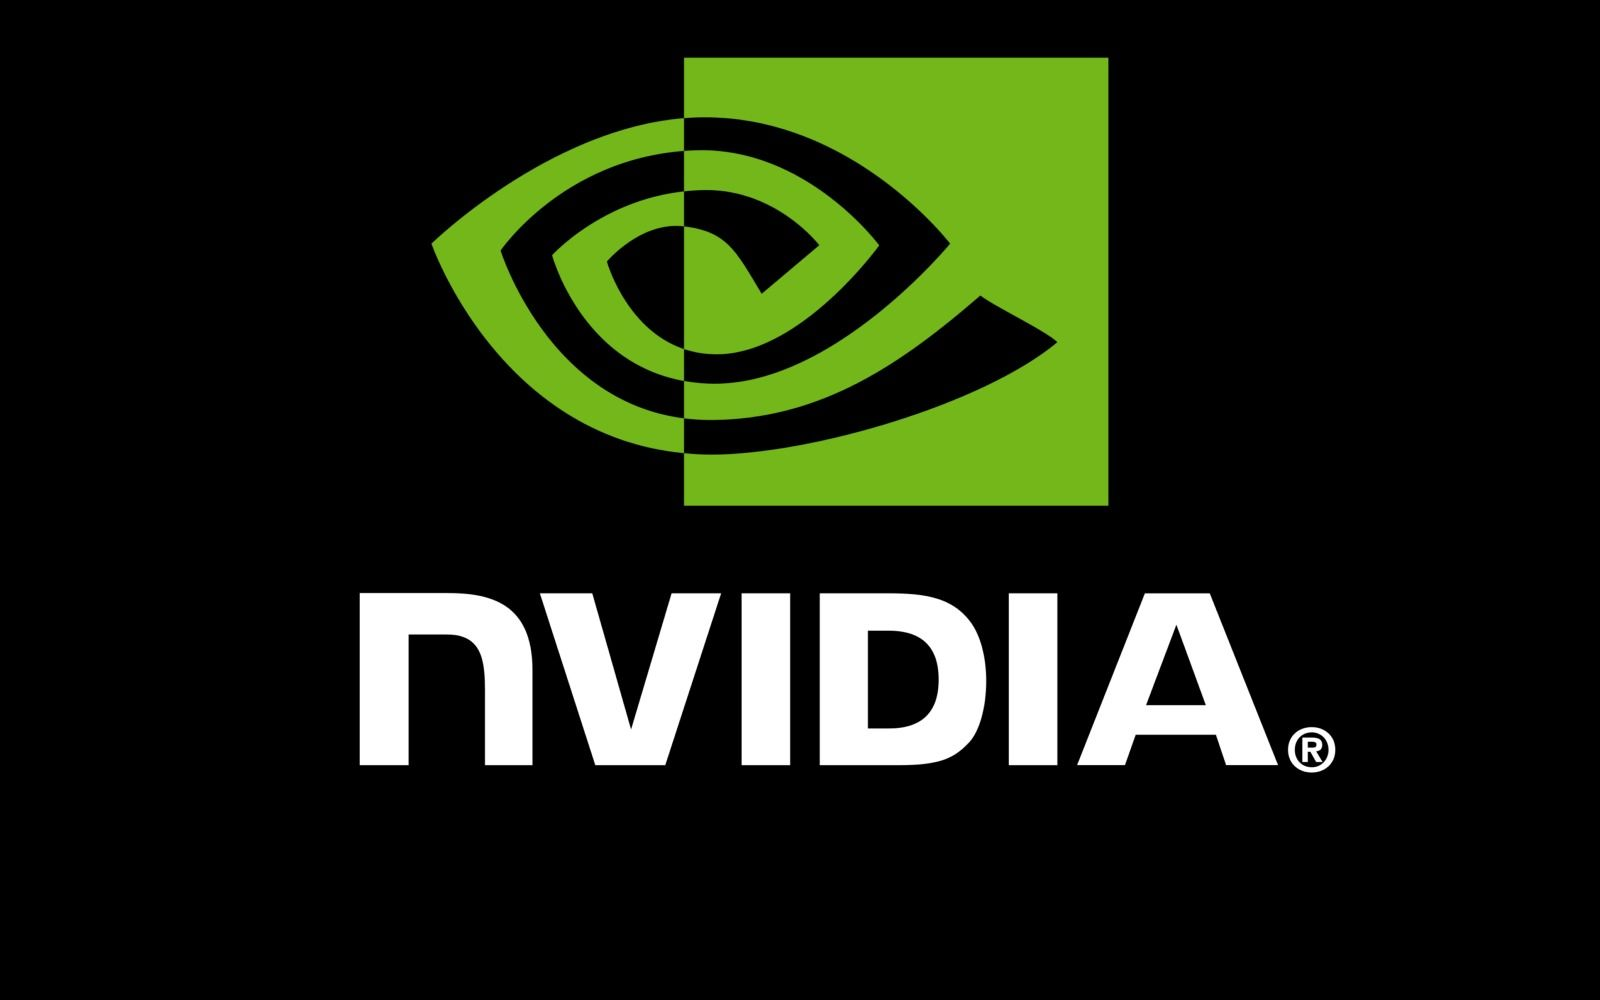 Nvidia Logo Wallpaper Forwallpaper Com Cong Nghệ